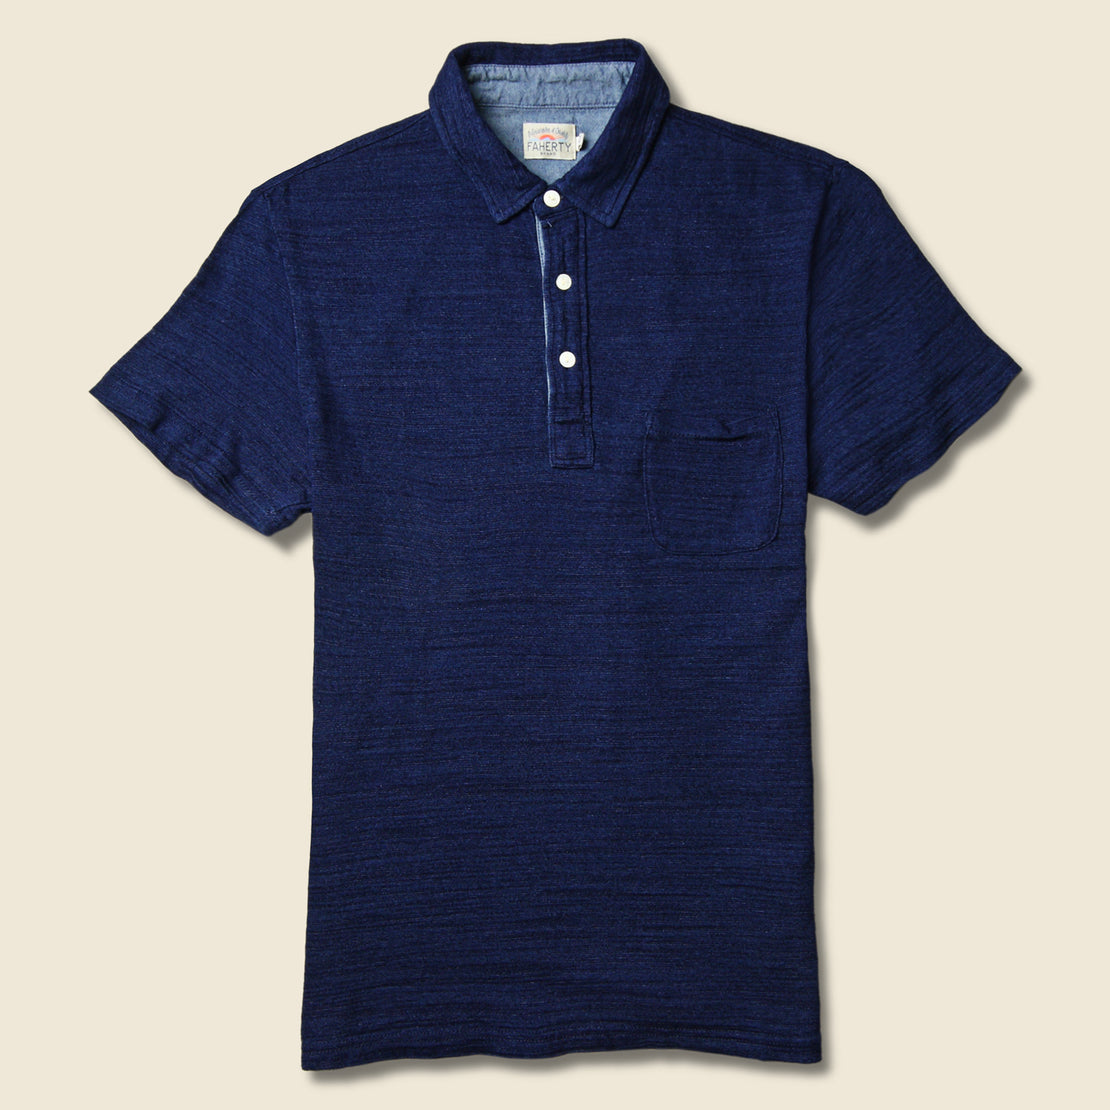 Faherty Jersey Beach Polo - Dark Wash